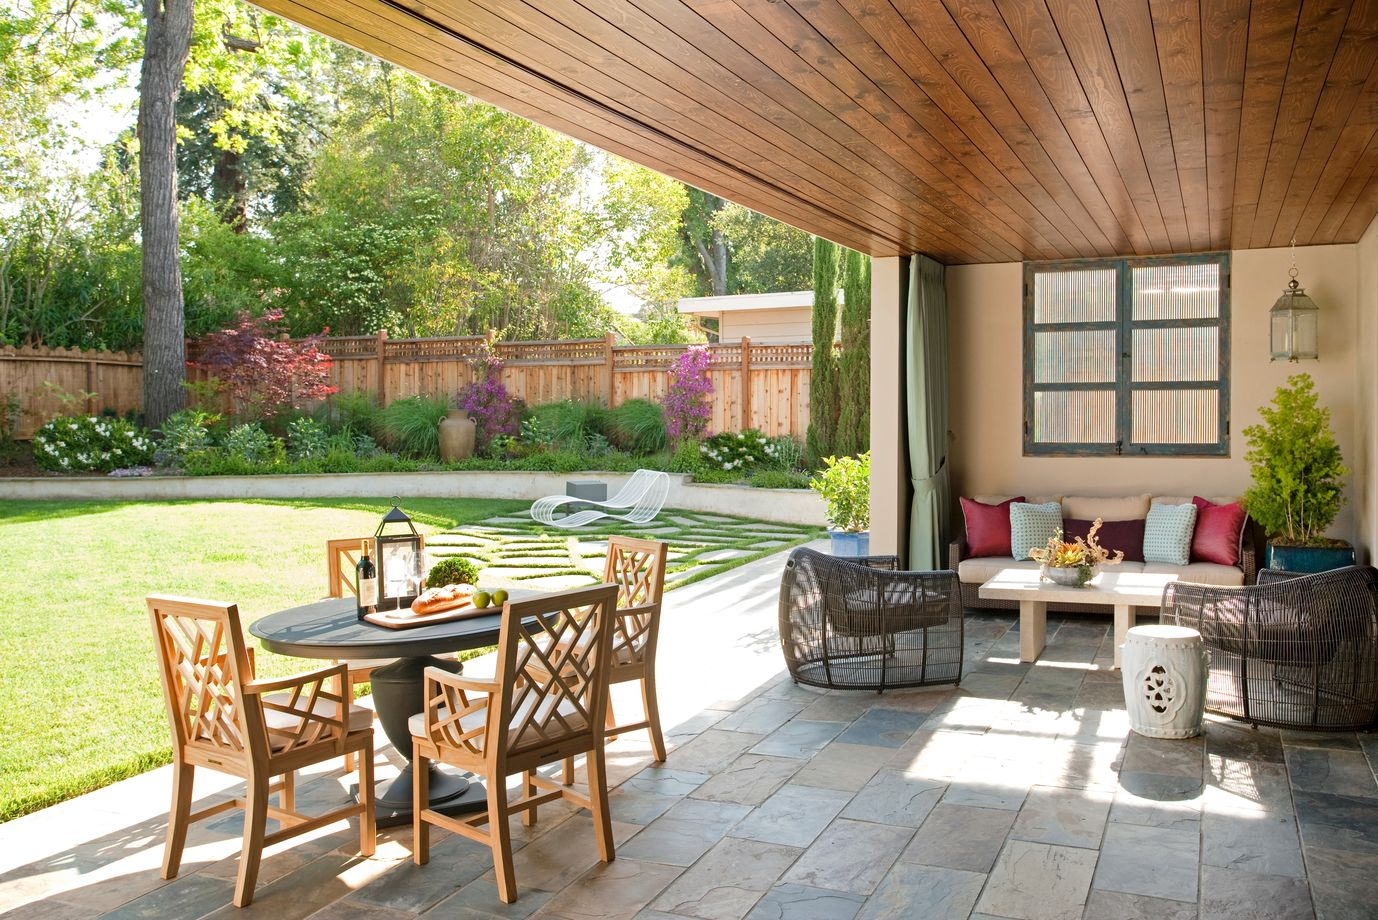 Patio Ideas to Make Your Backyard the Ideal Summer Escape on Backyard Porch Ideas id=58203